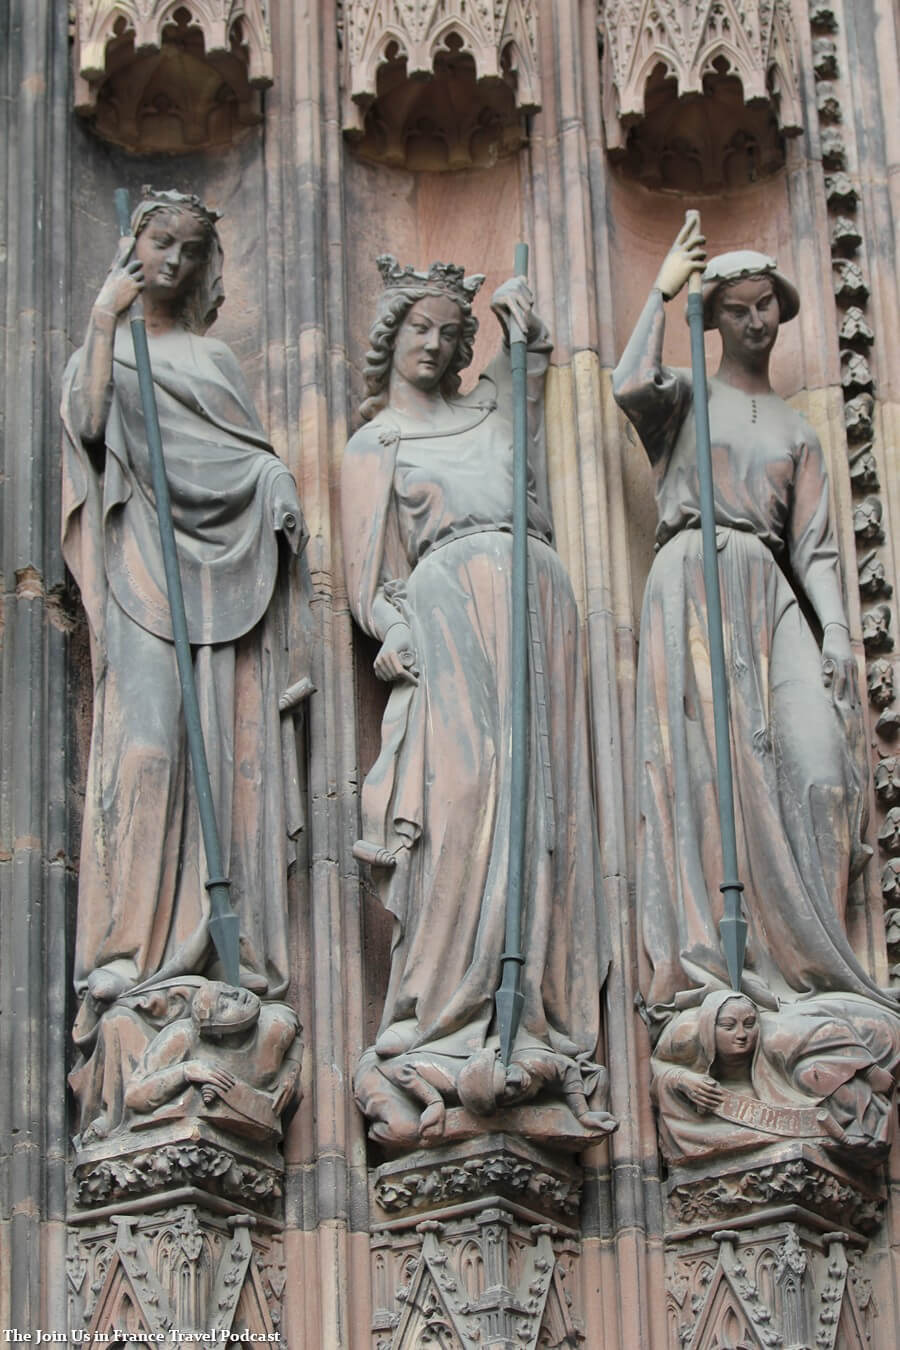 Statue of 3 women carrying spears outside of the Strasbourg Cathedral